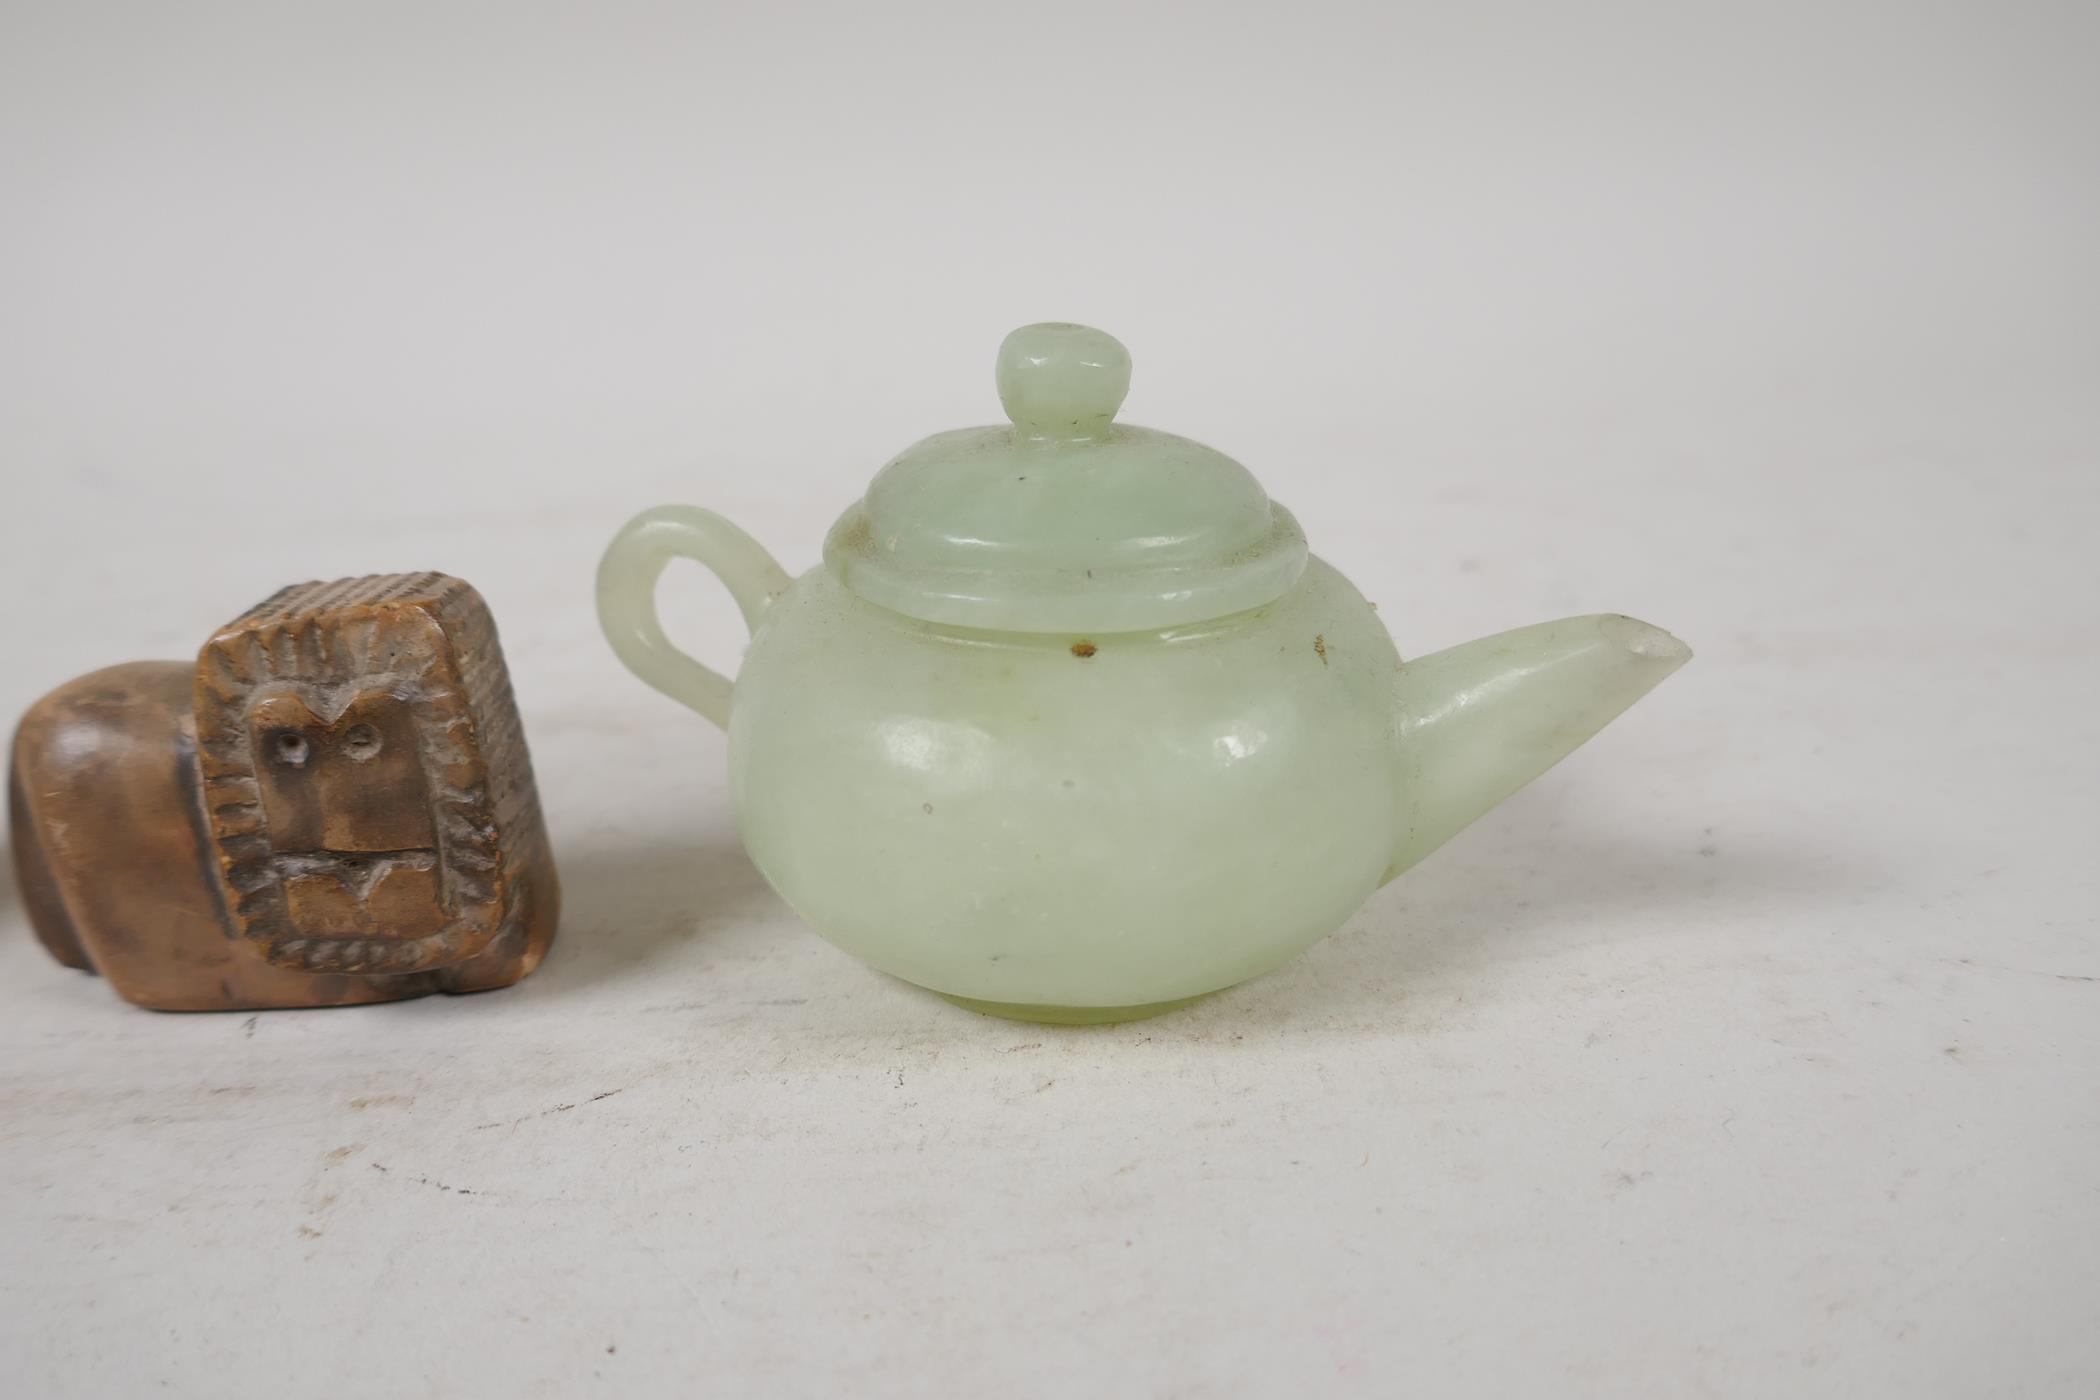 A Chinese carved green jade squat form teapot, Roman terracotta oil lamp, and a carved soapstone - Image 3 of 5